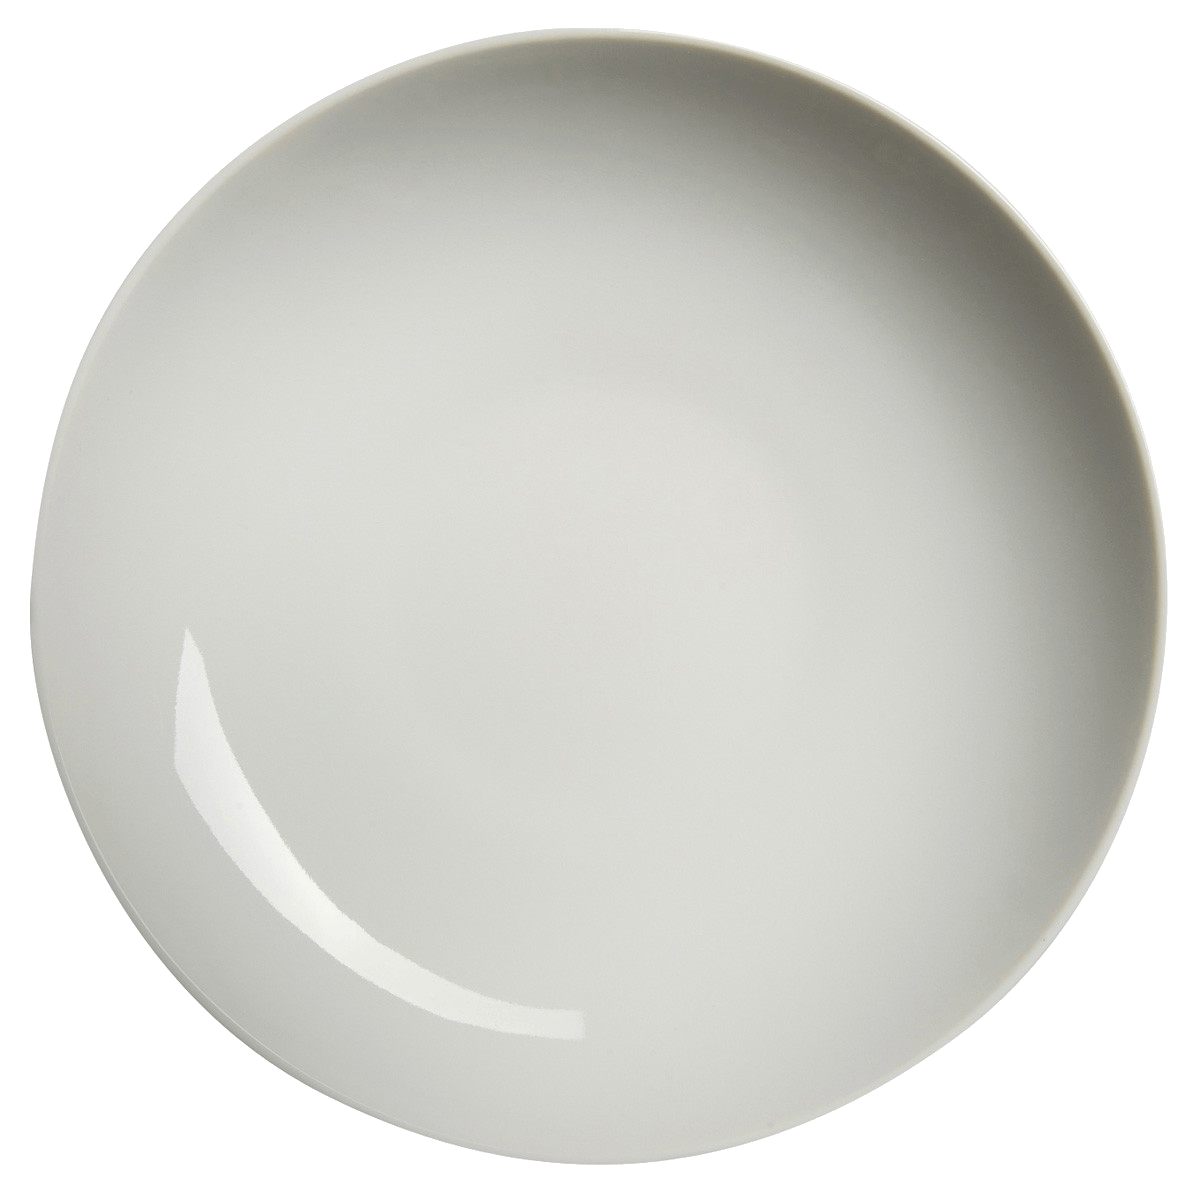 Empty Plate Clipart - Cliparts Galleries